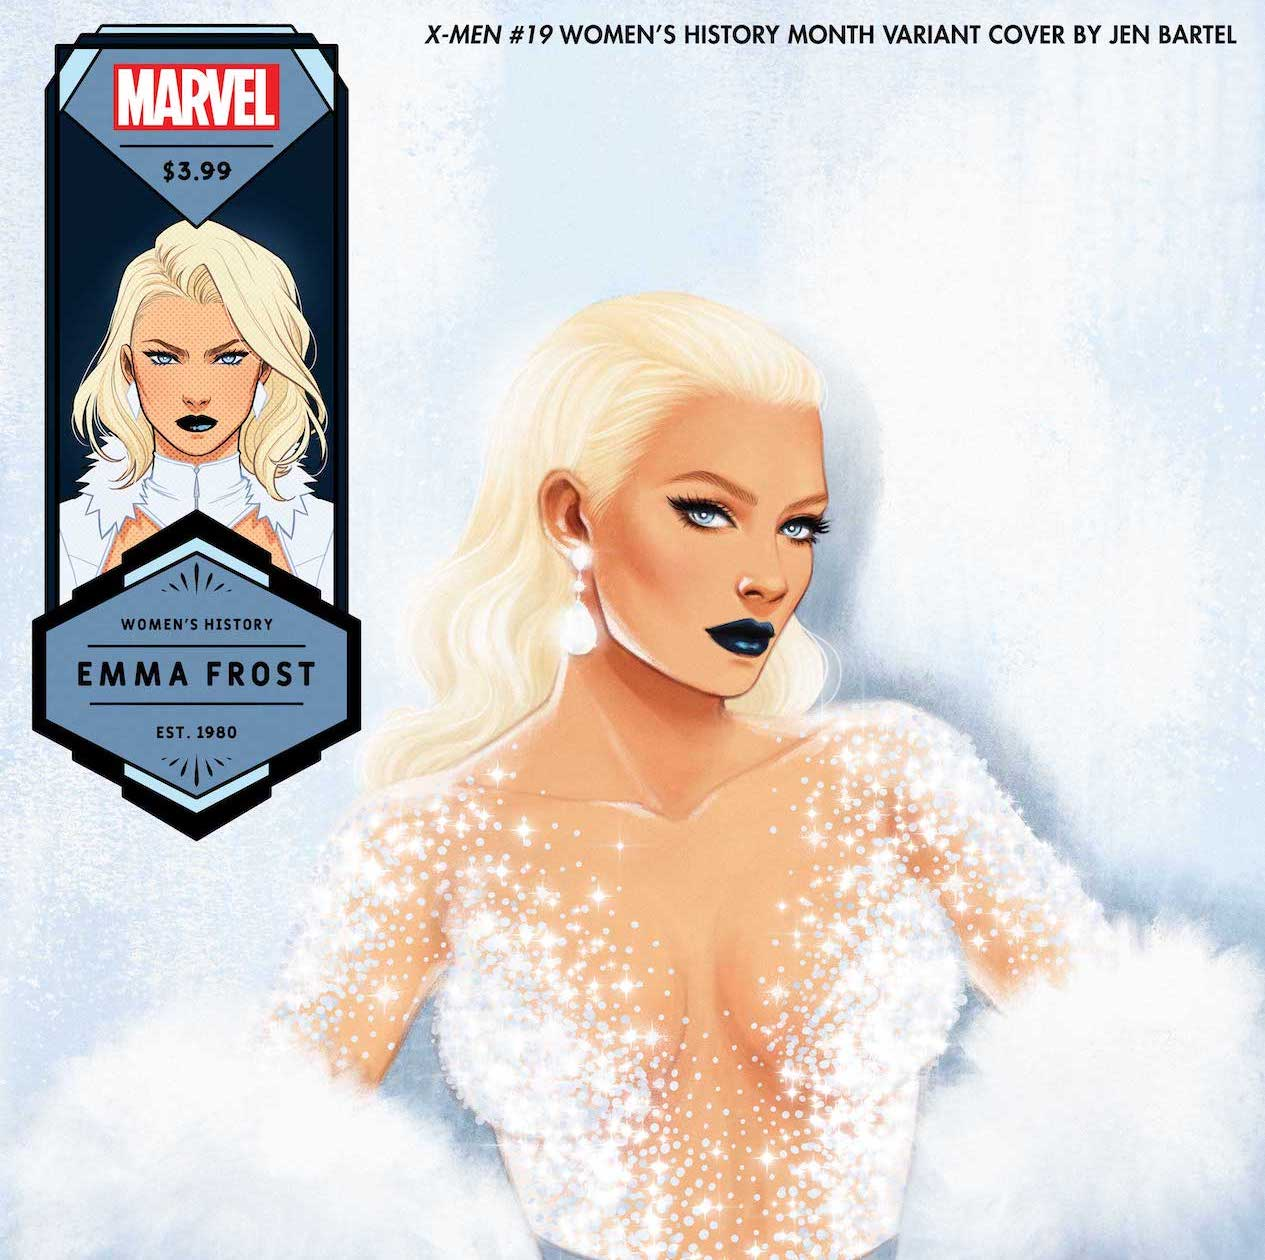 Jen Bartel dazzles with Women's History Month variant covers